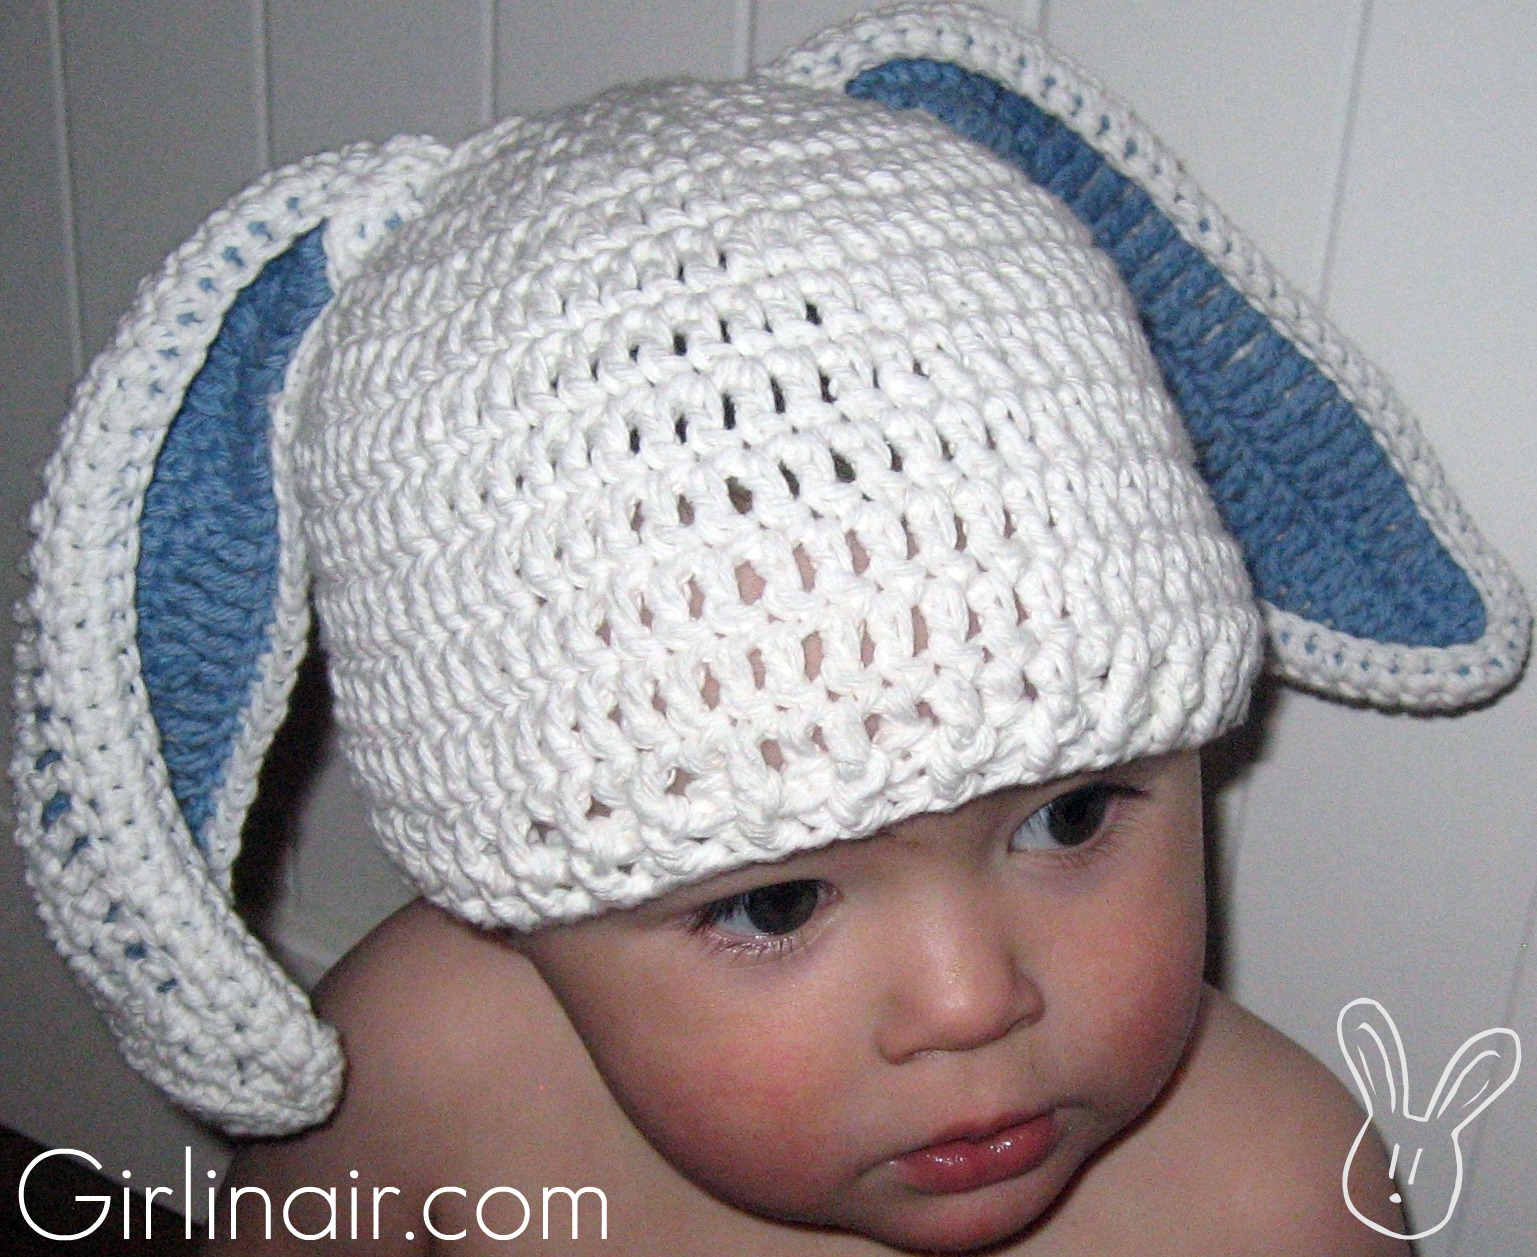 Girl in air blog floppy bunny hat pattern dt1010fo